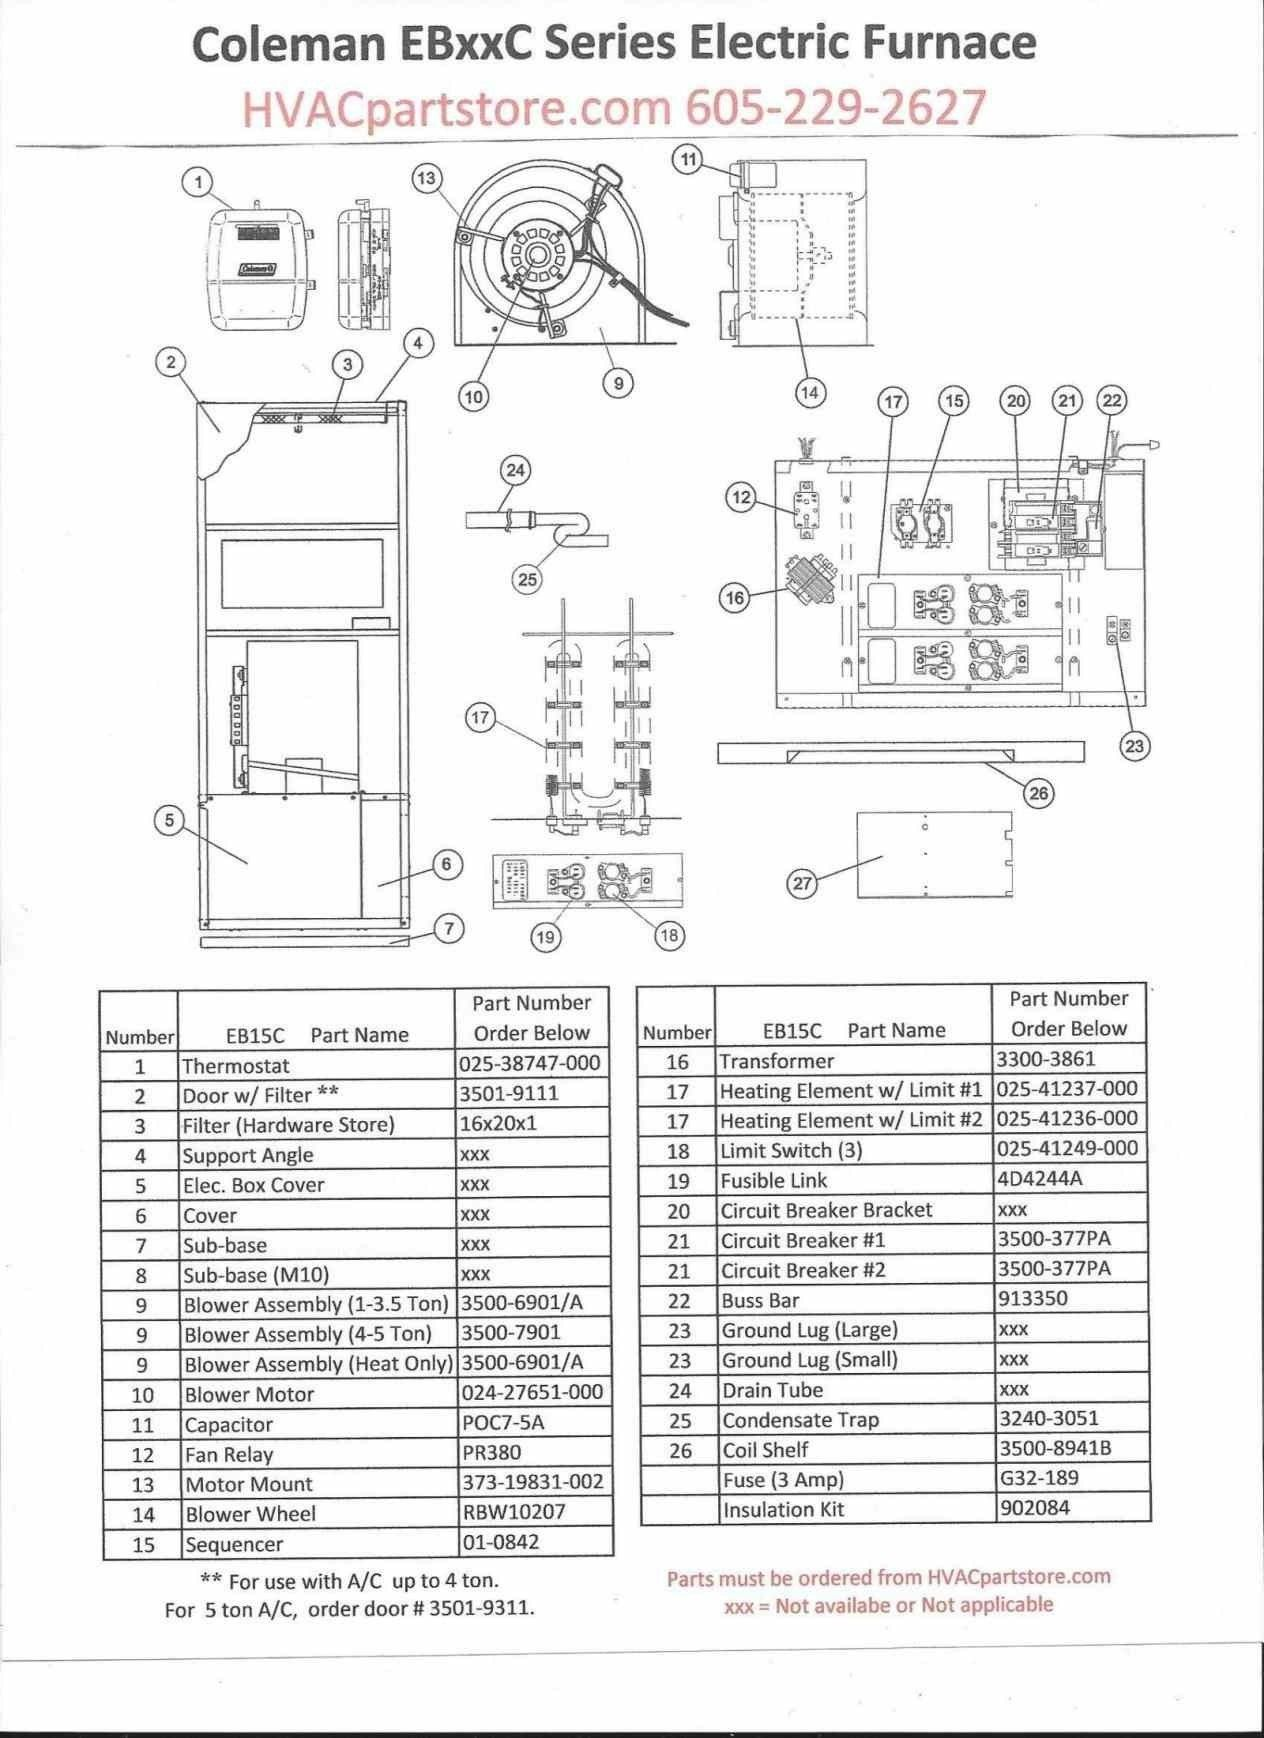 New Wiring Diagram Ac Mobil With Images Diagram Diagram